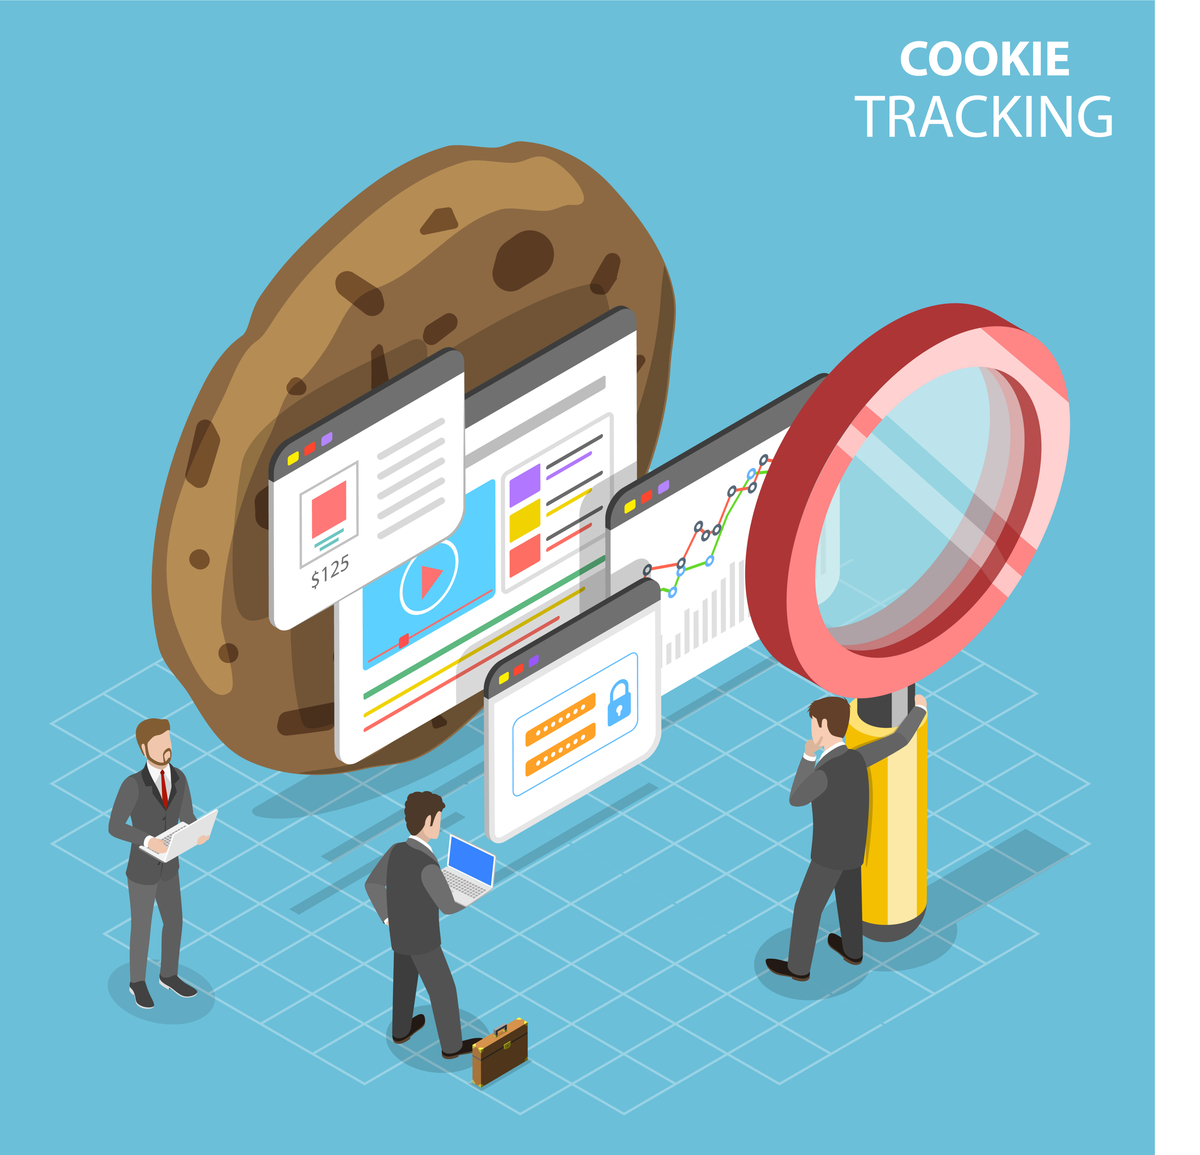 Illustration of people in suits looking at screens with a cookie behind them.